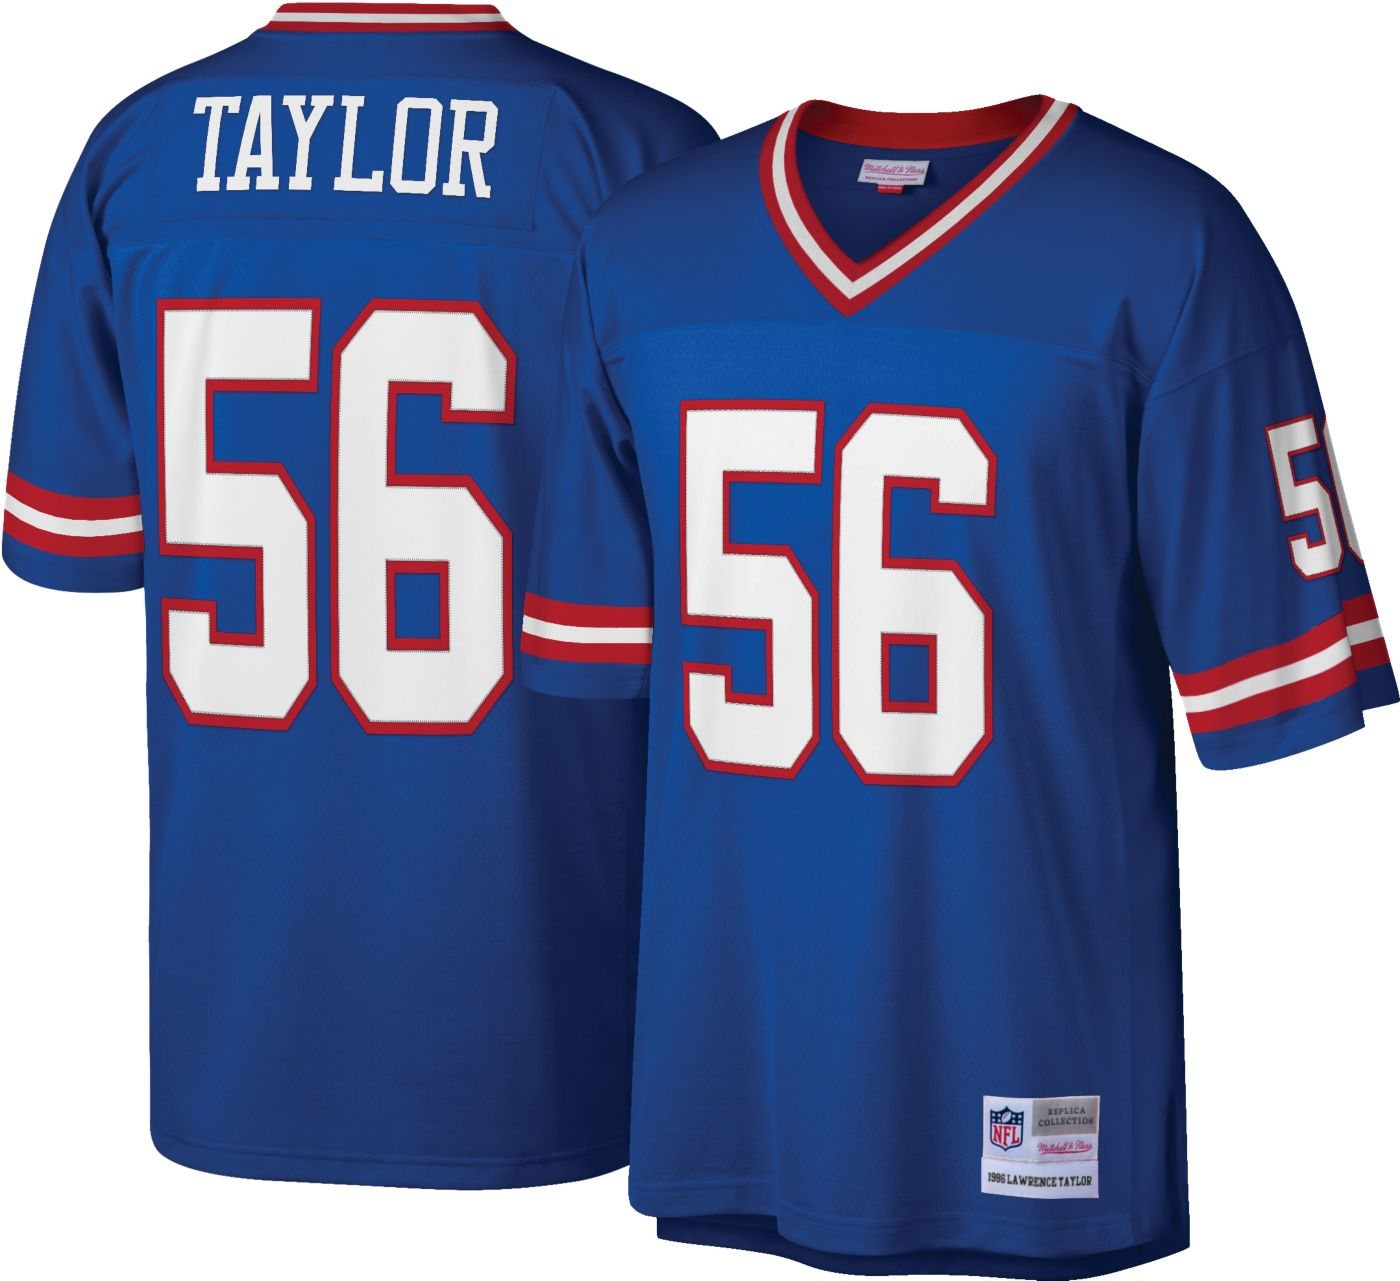 Mitchell & Ness Men's 1986 Game Jersey New York Giants Lawrence Taylor #56